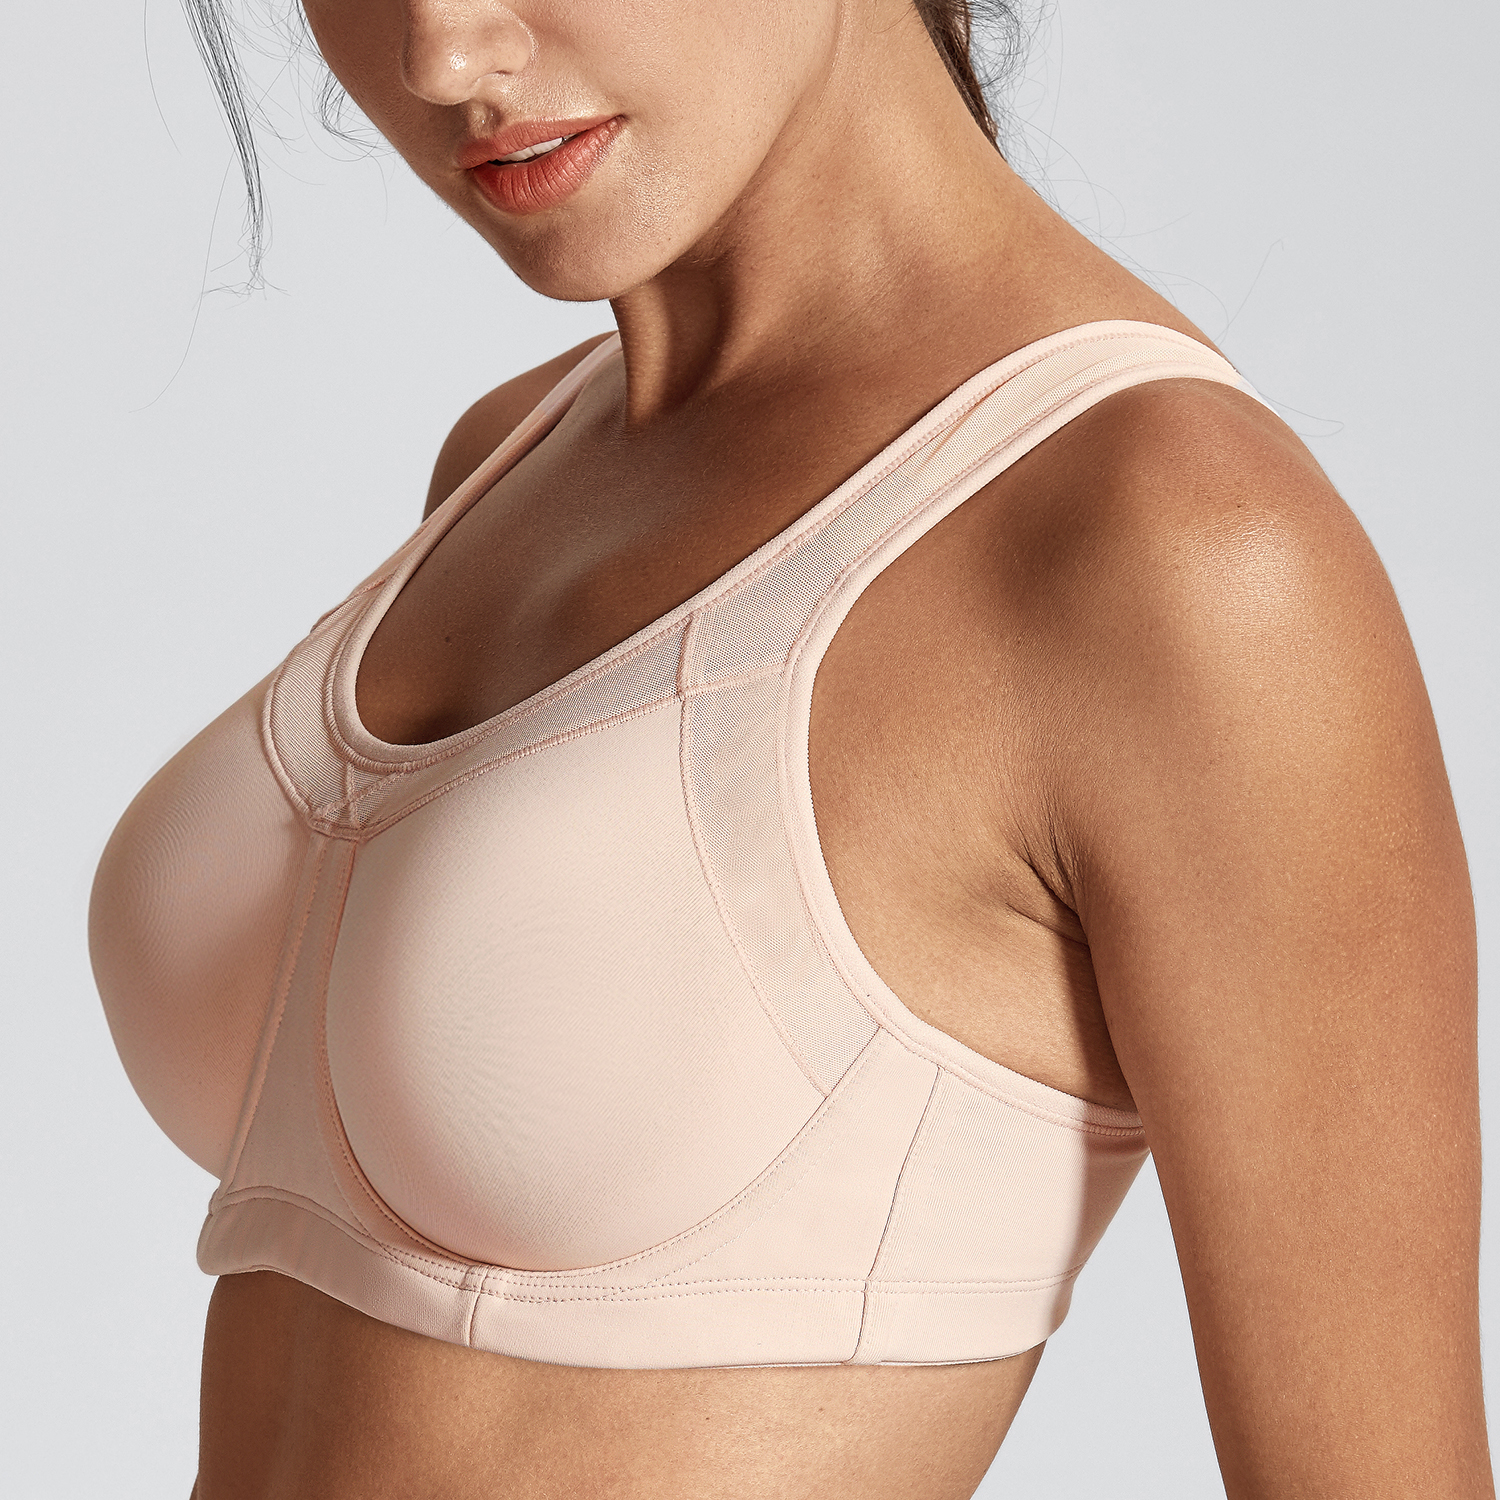 Women-039-s-High-Impact-Full-Coverage-Bounce-Control-Plus-Size-Workout-Sports-Bra thumbnail 13